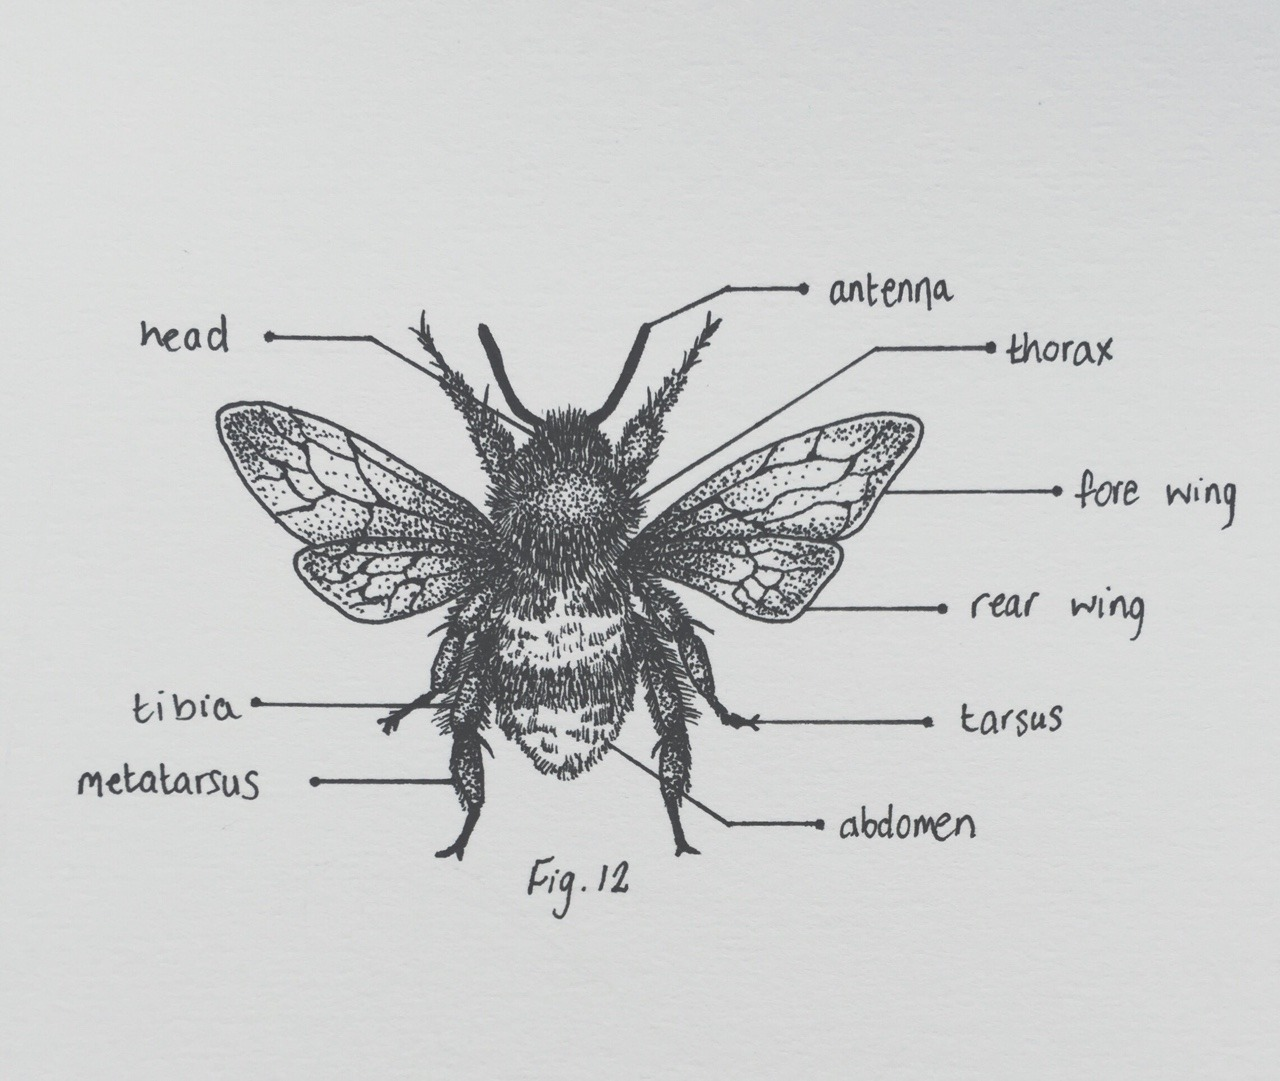 The Cryptic Chemist Bumblebee Diagram Print Is